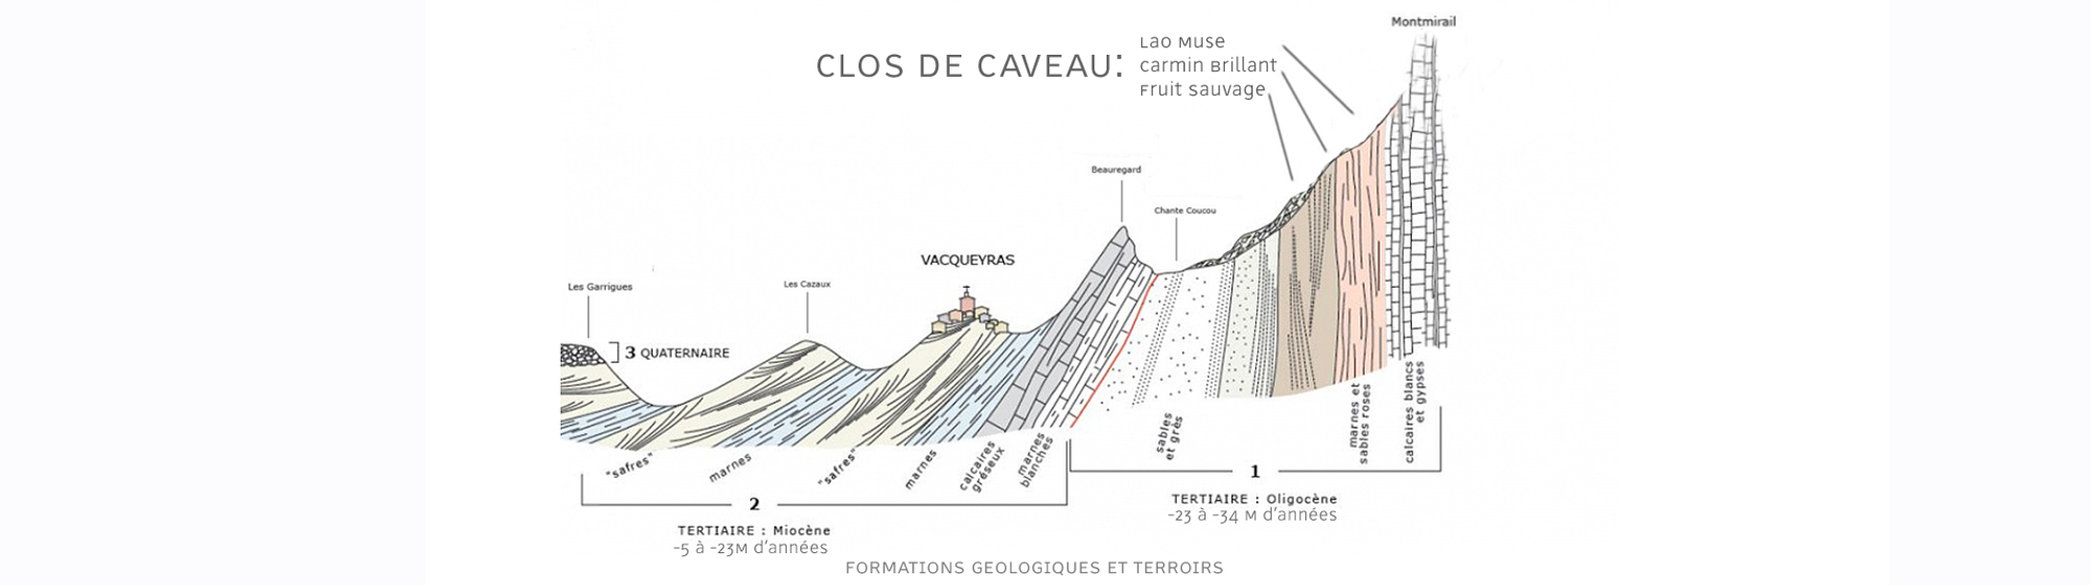 geology and terroir, very different wines with same grapes